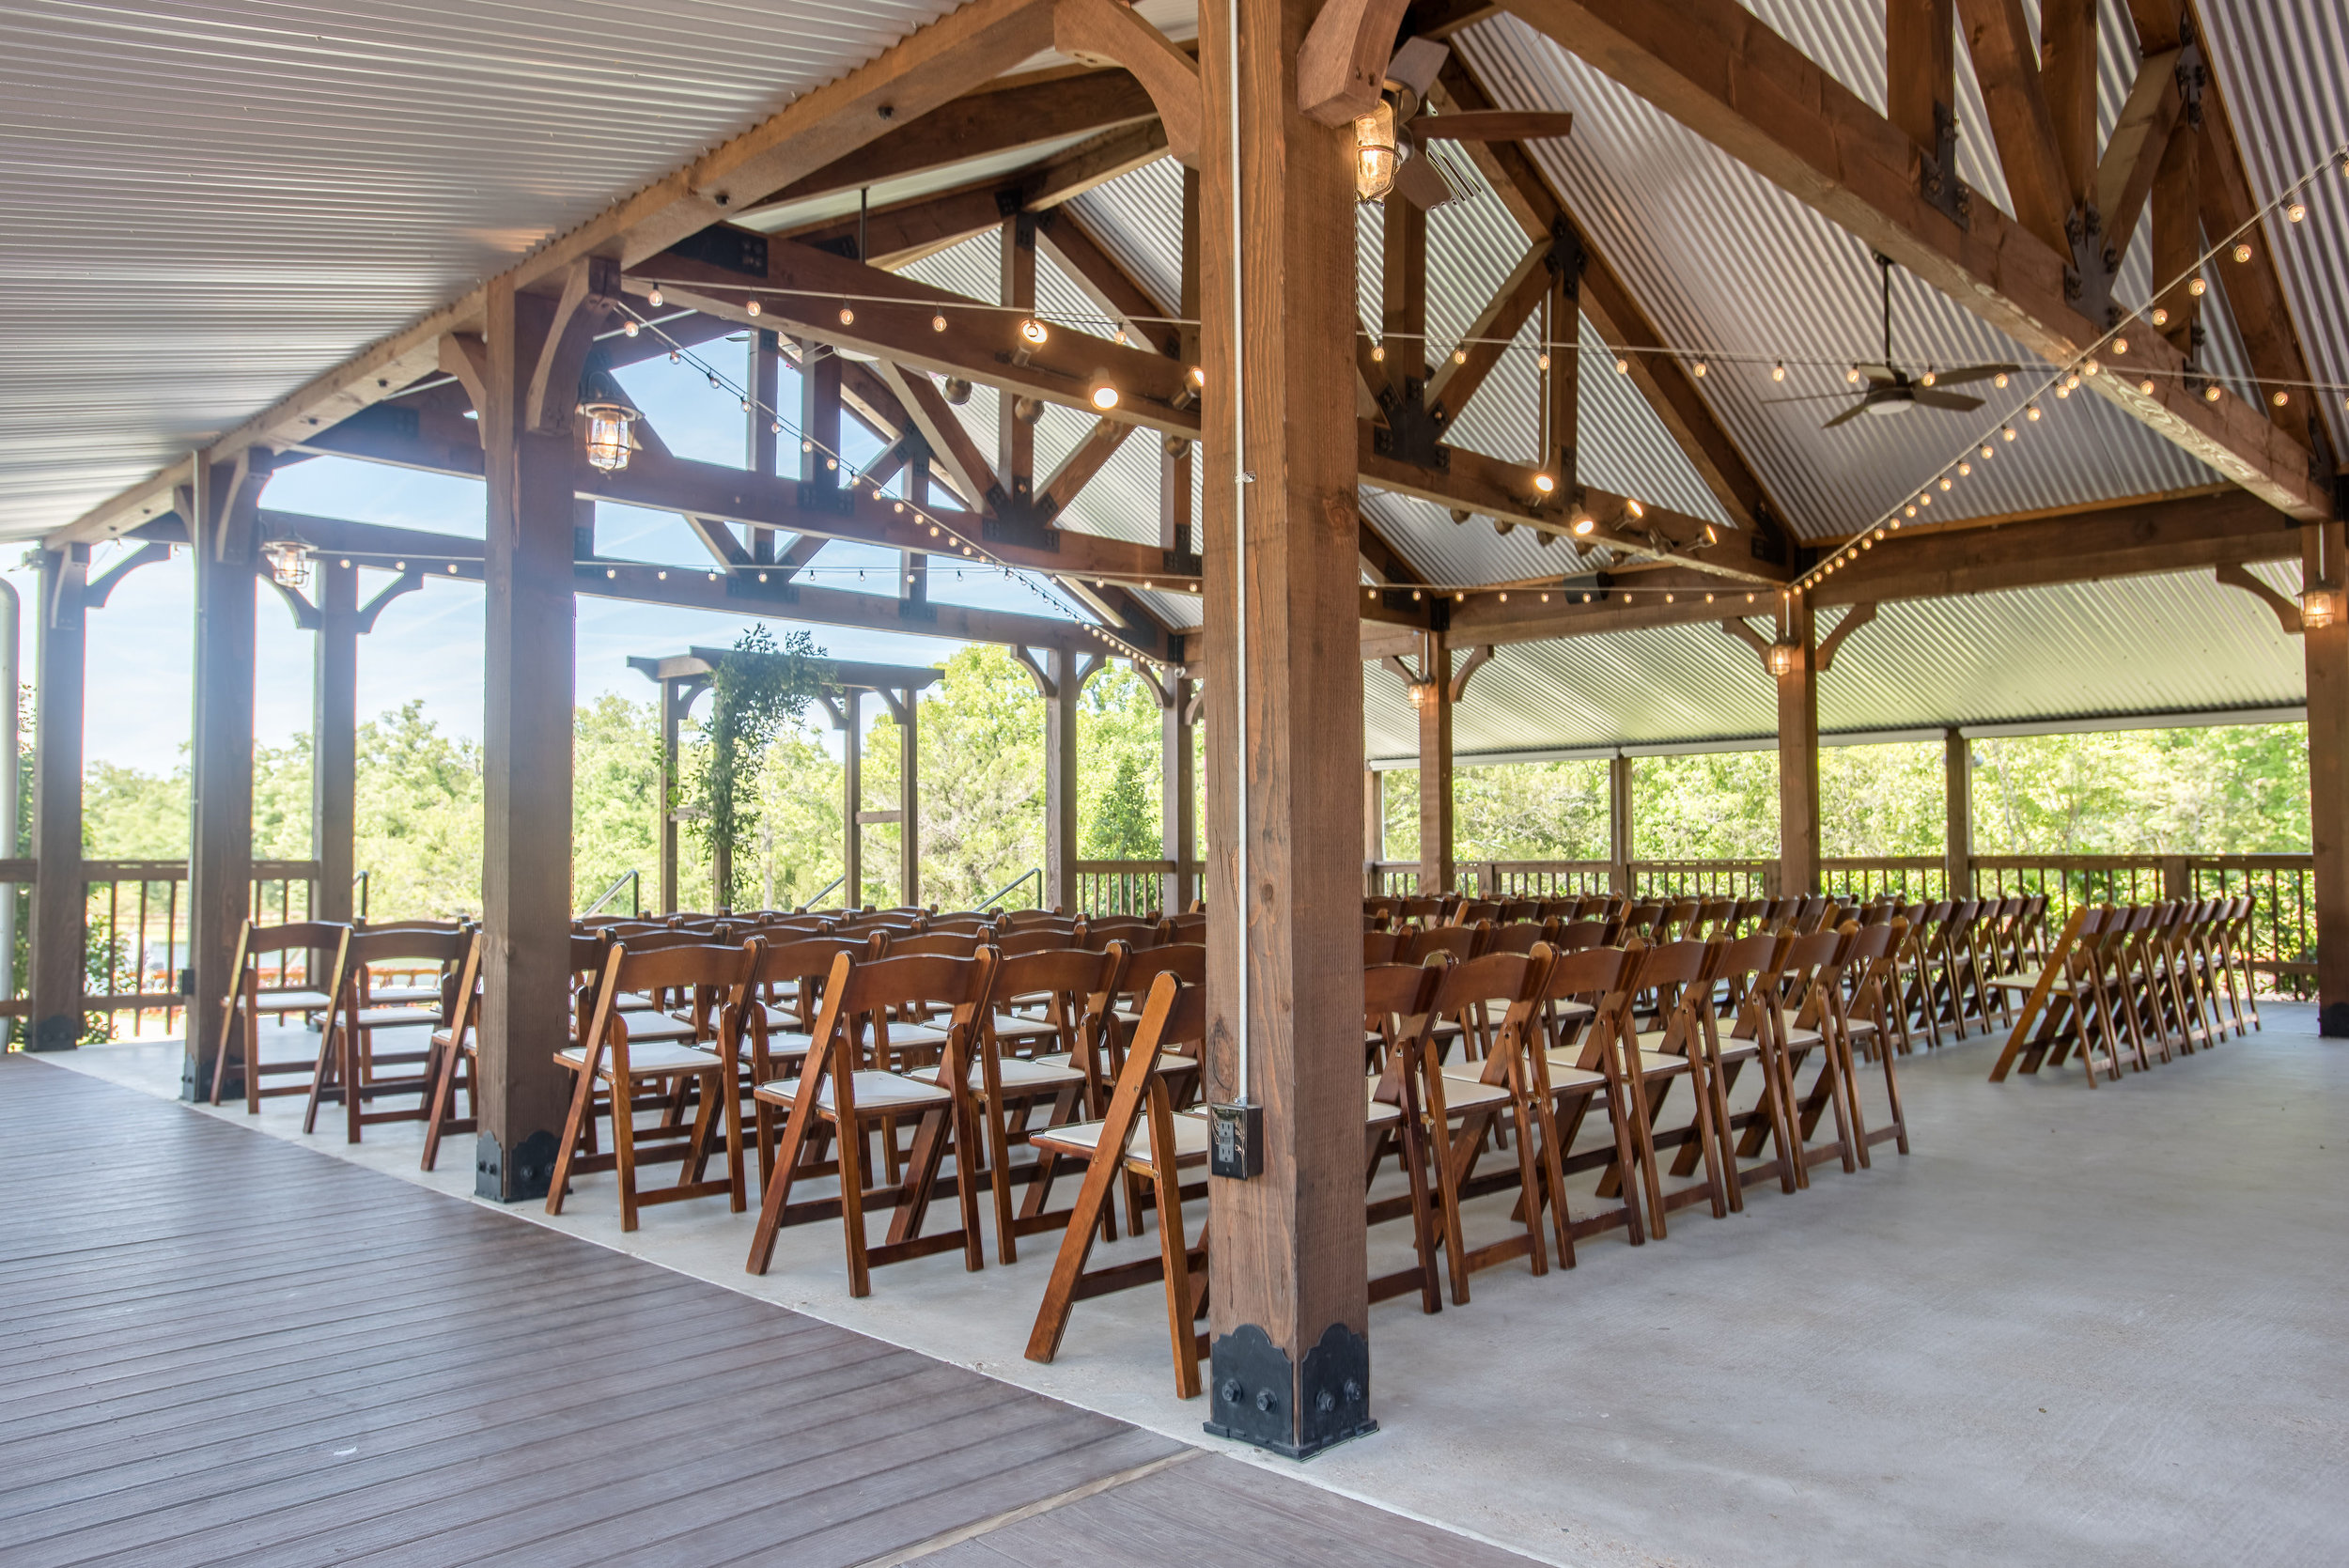 barn style wedding venue texas peach creek ranch